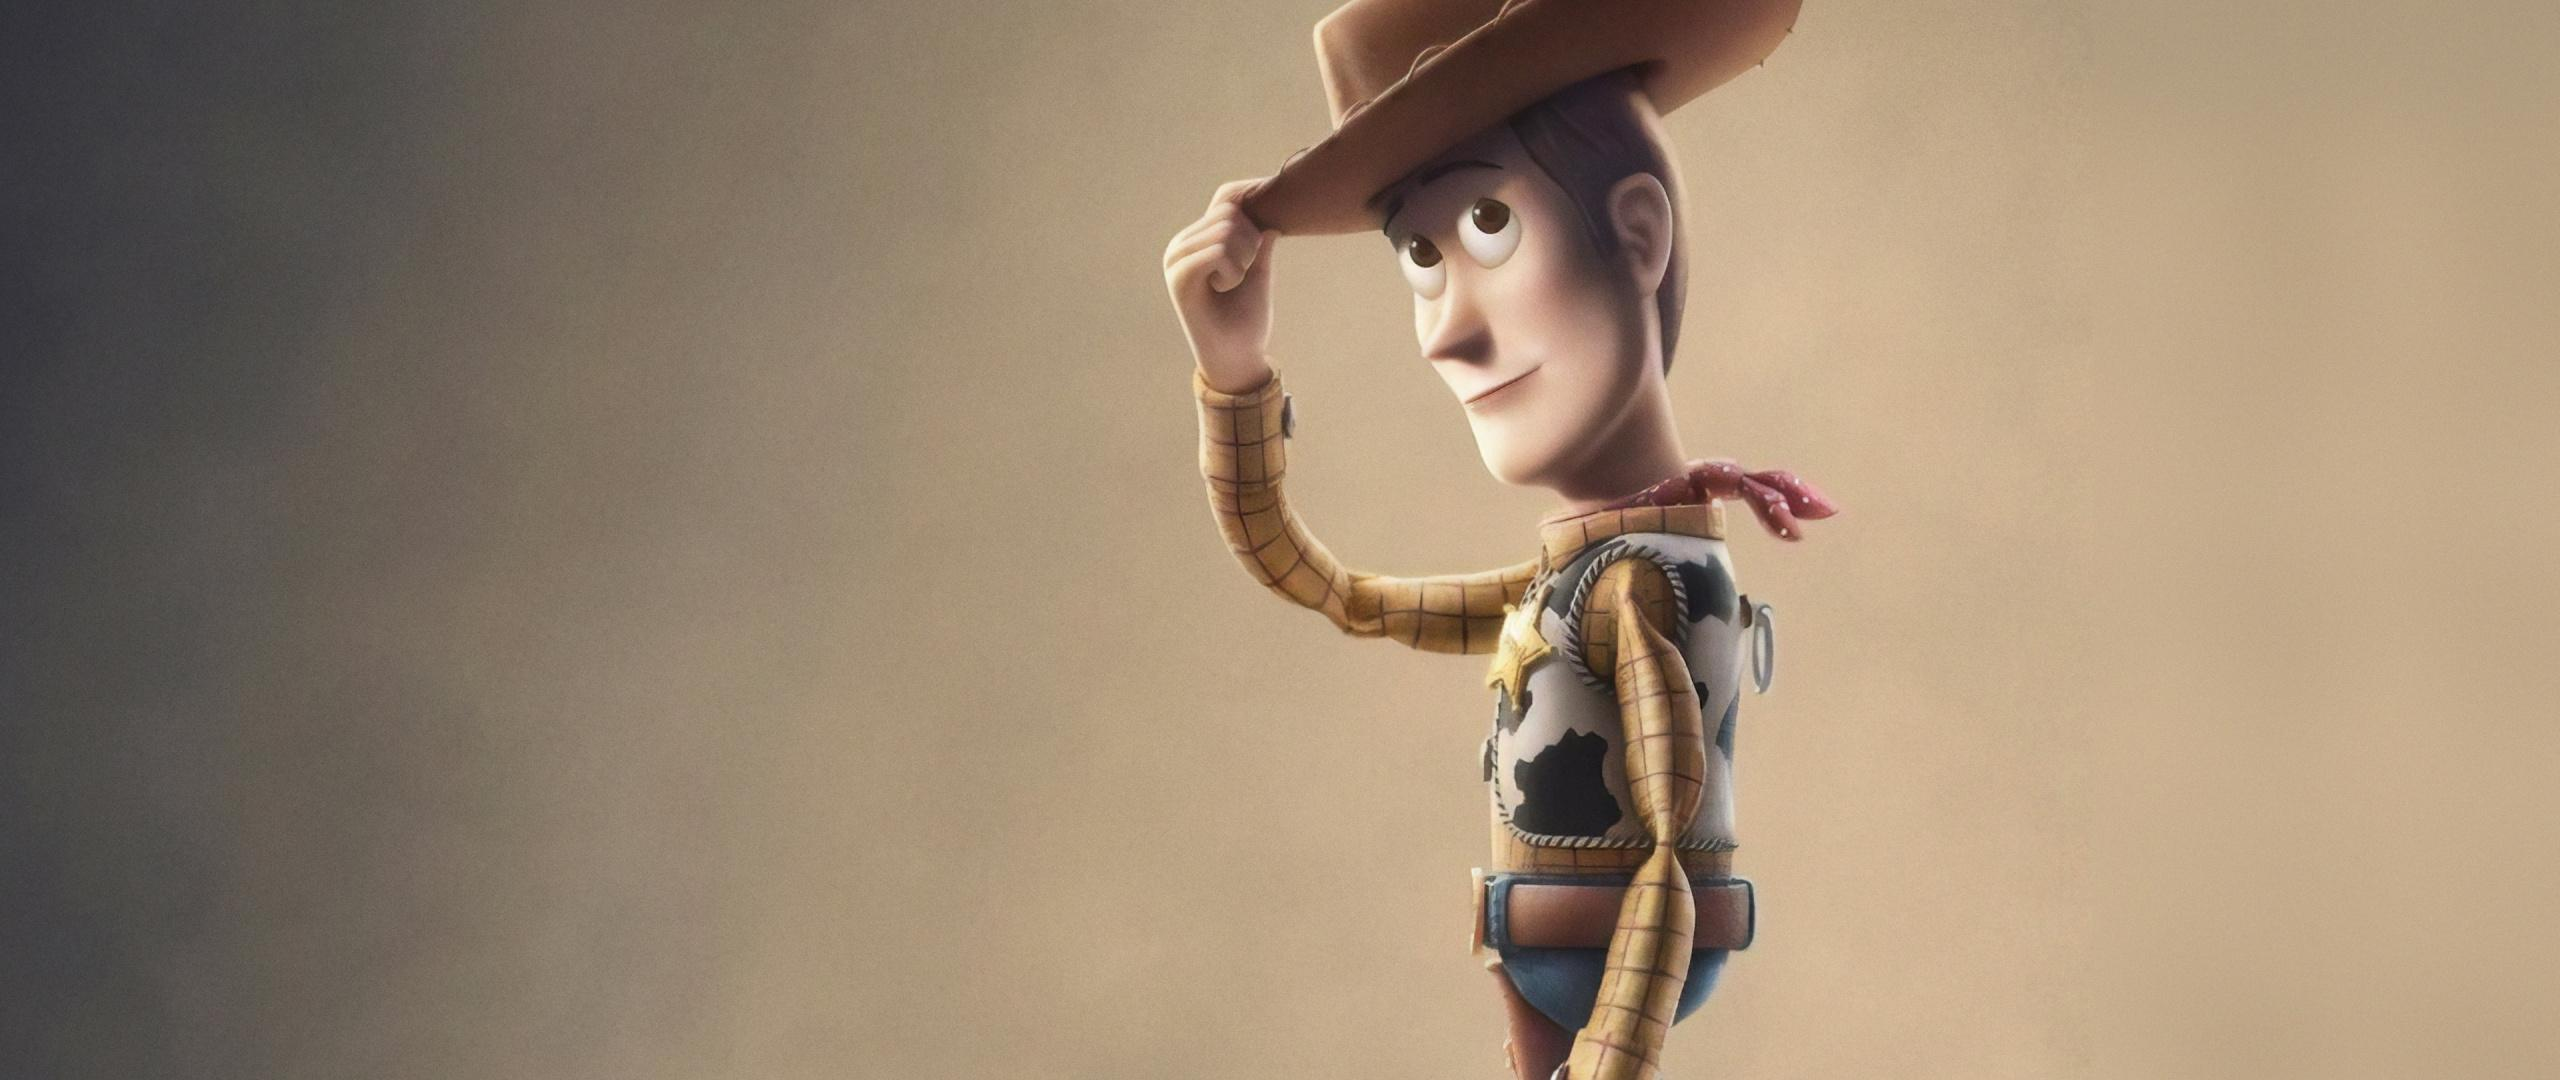 Download 2560x1080 wallpaper toy story 4, woody, animation movie ...